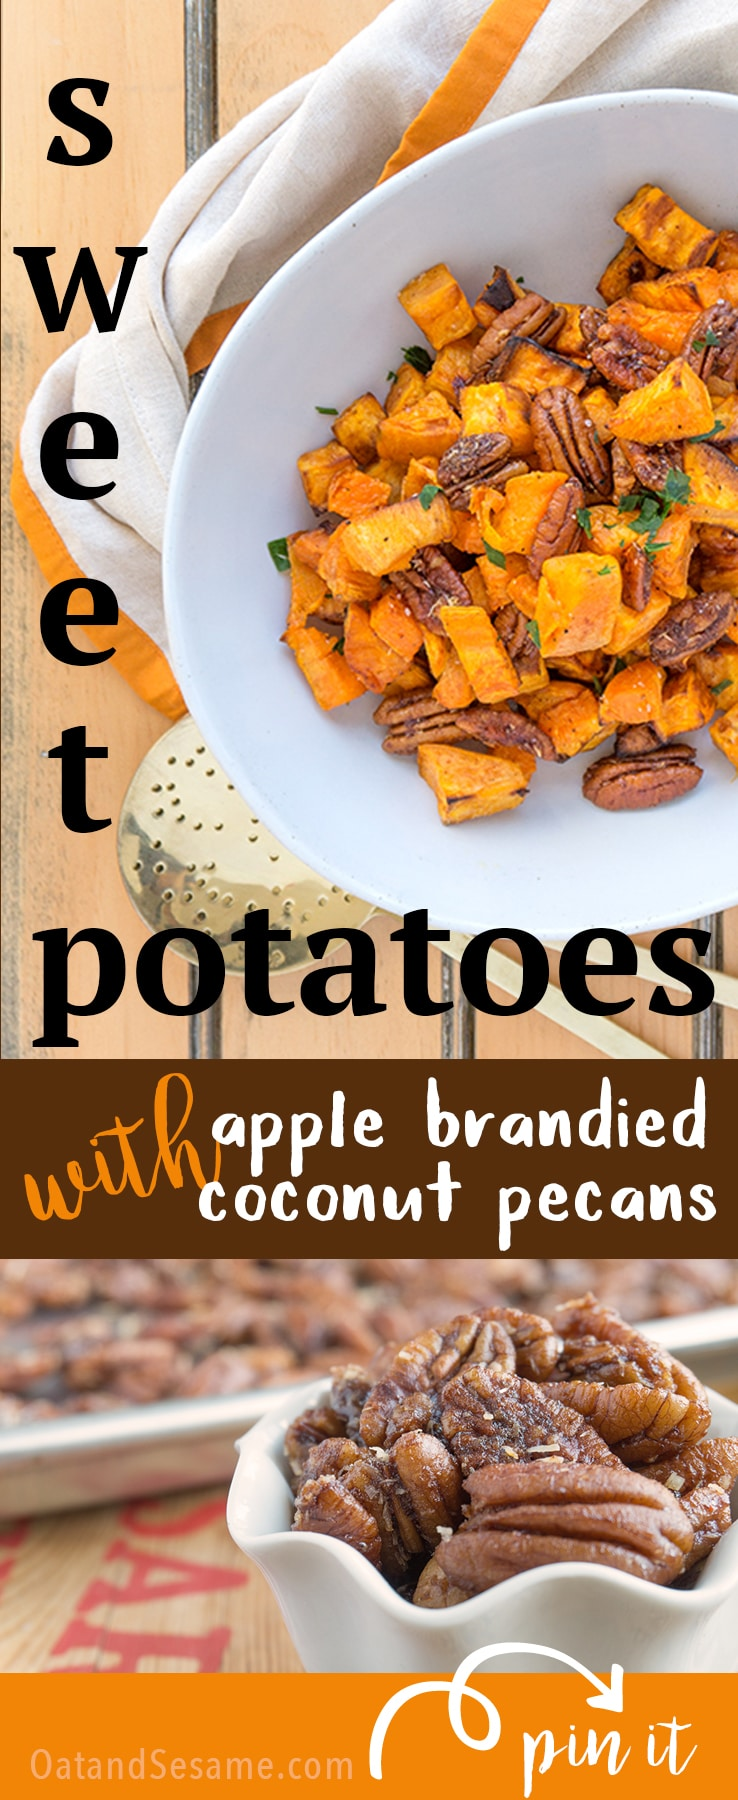 Roasted Sweet Potatoes with Apple Brandied Coconut Pecans - ramp up your Thanksgiving game   #SWEETPOTATOES   #THANKSGIVING   CANDIED PECANS   #Recipes at OatandSesame.com